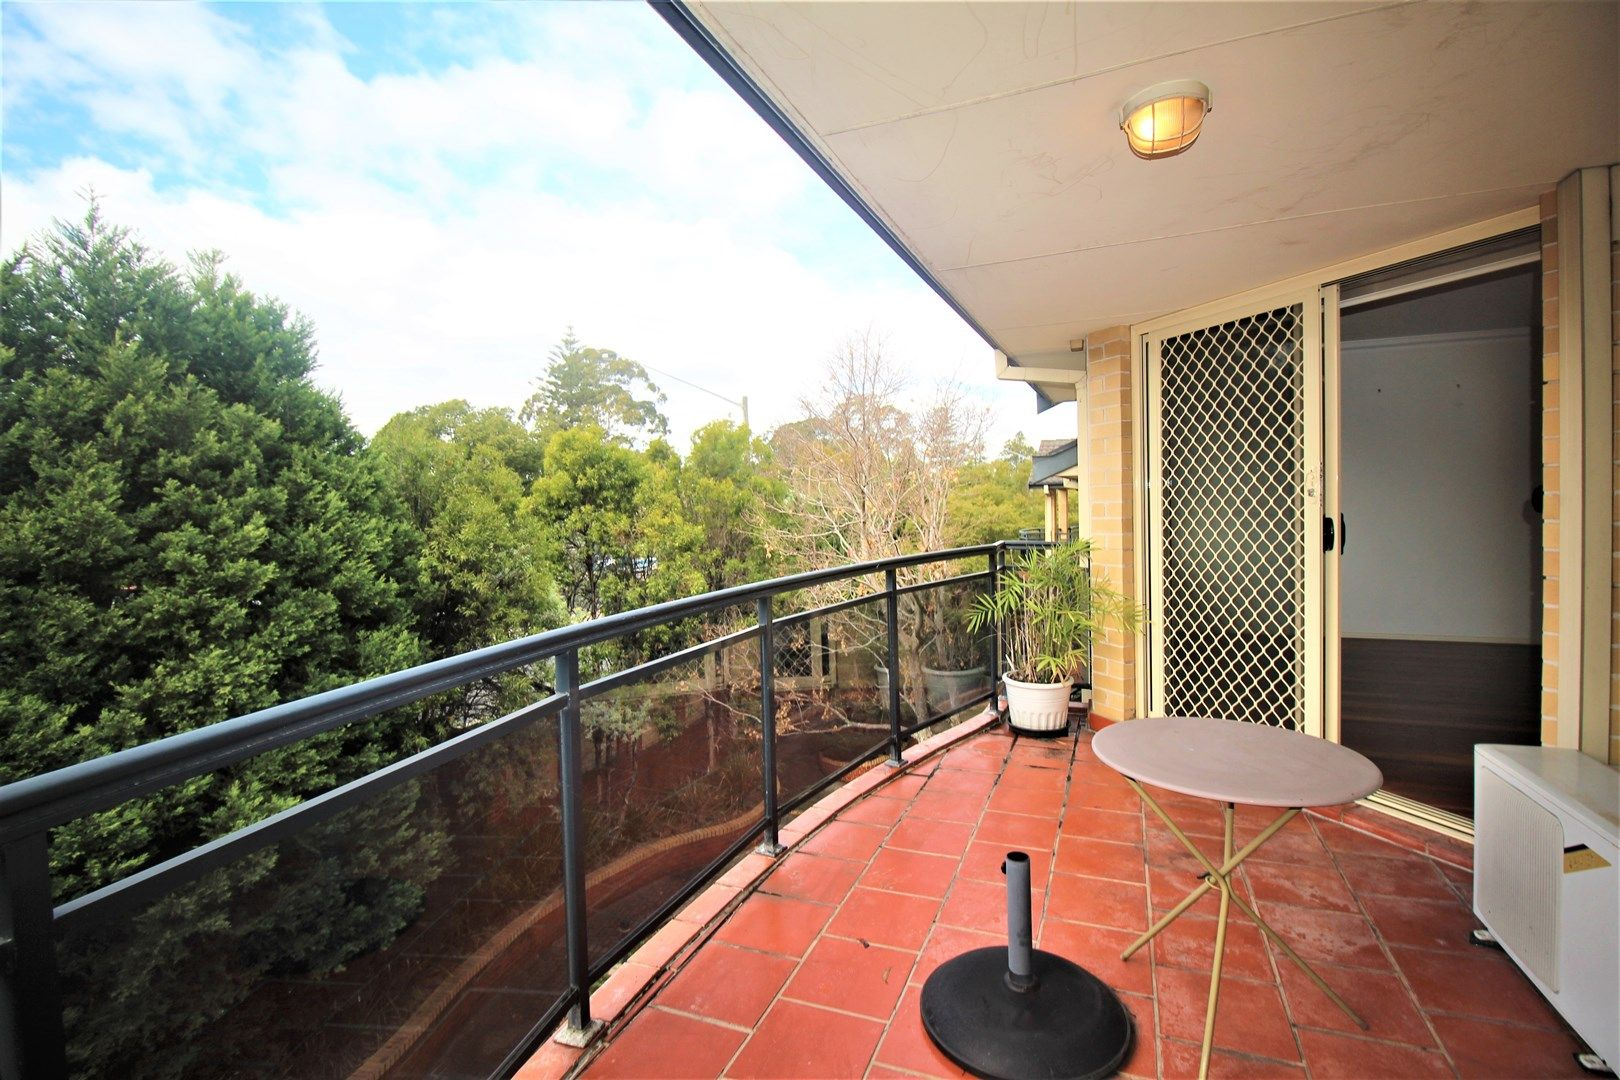 112/298 Pennant Hills  Road, Pennant Hills NSW 2120, Image 0